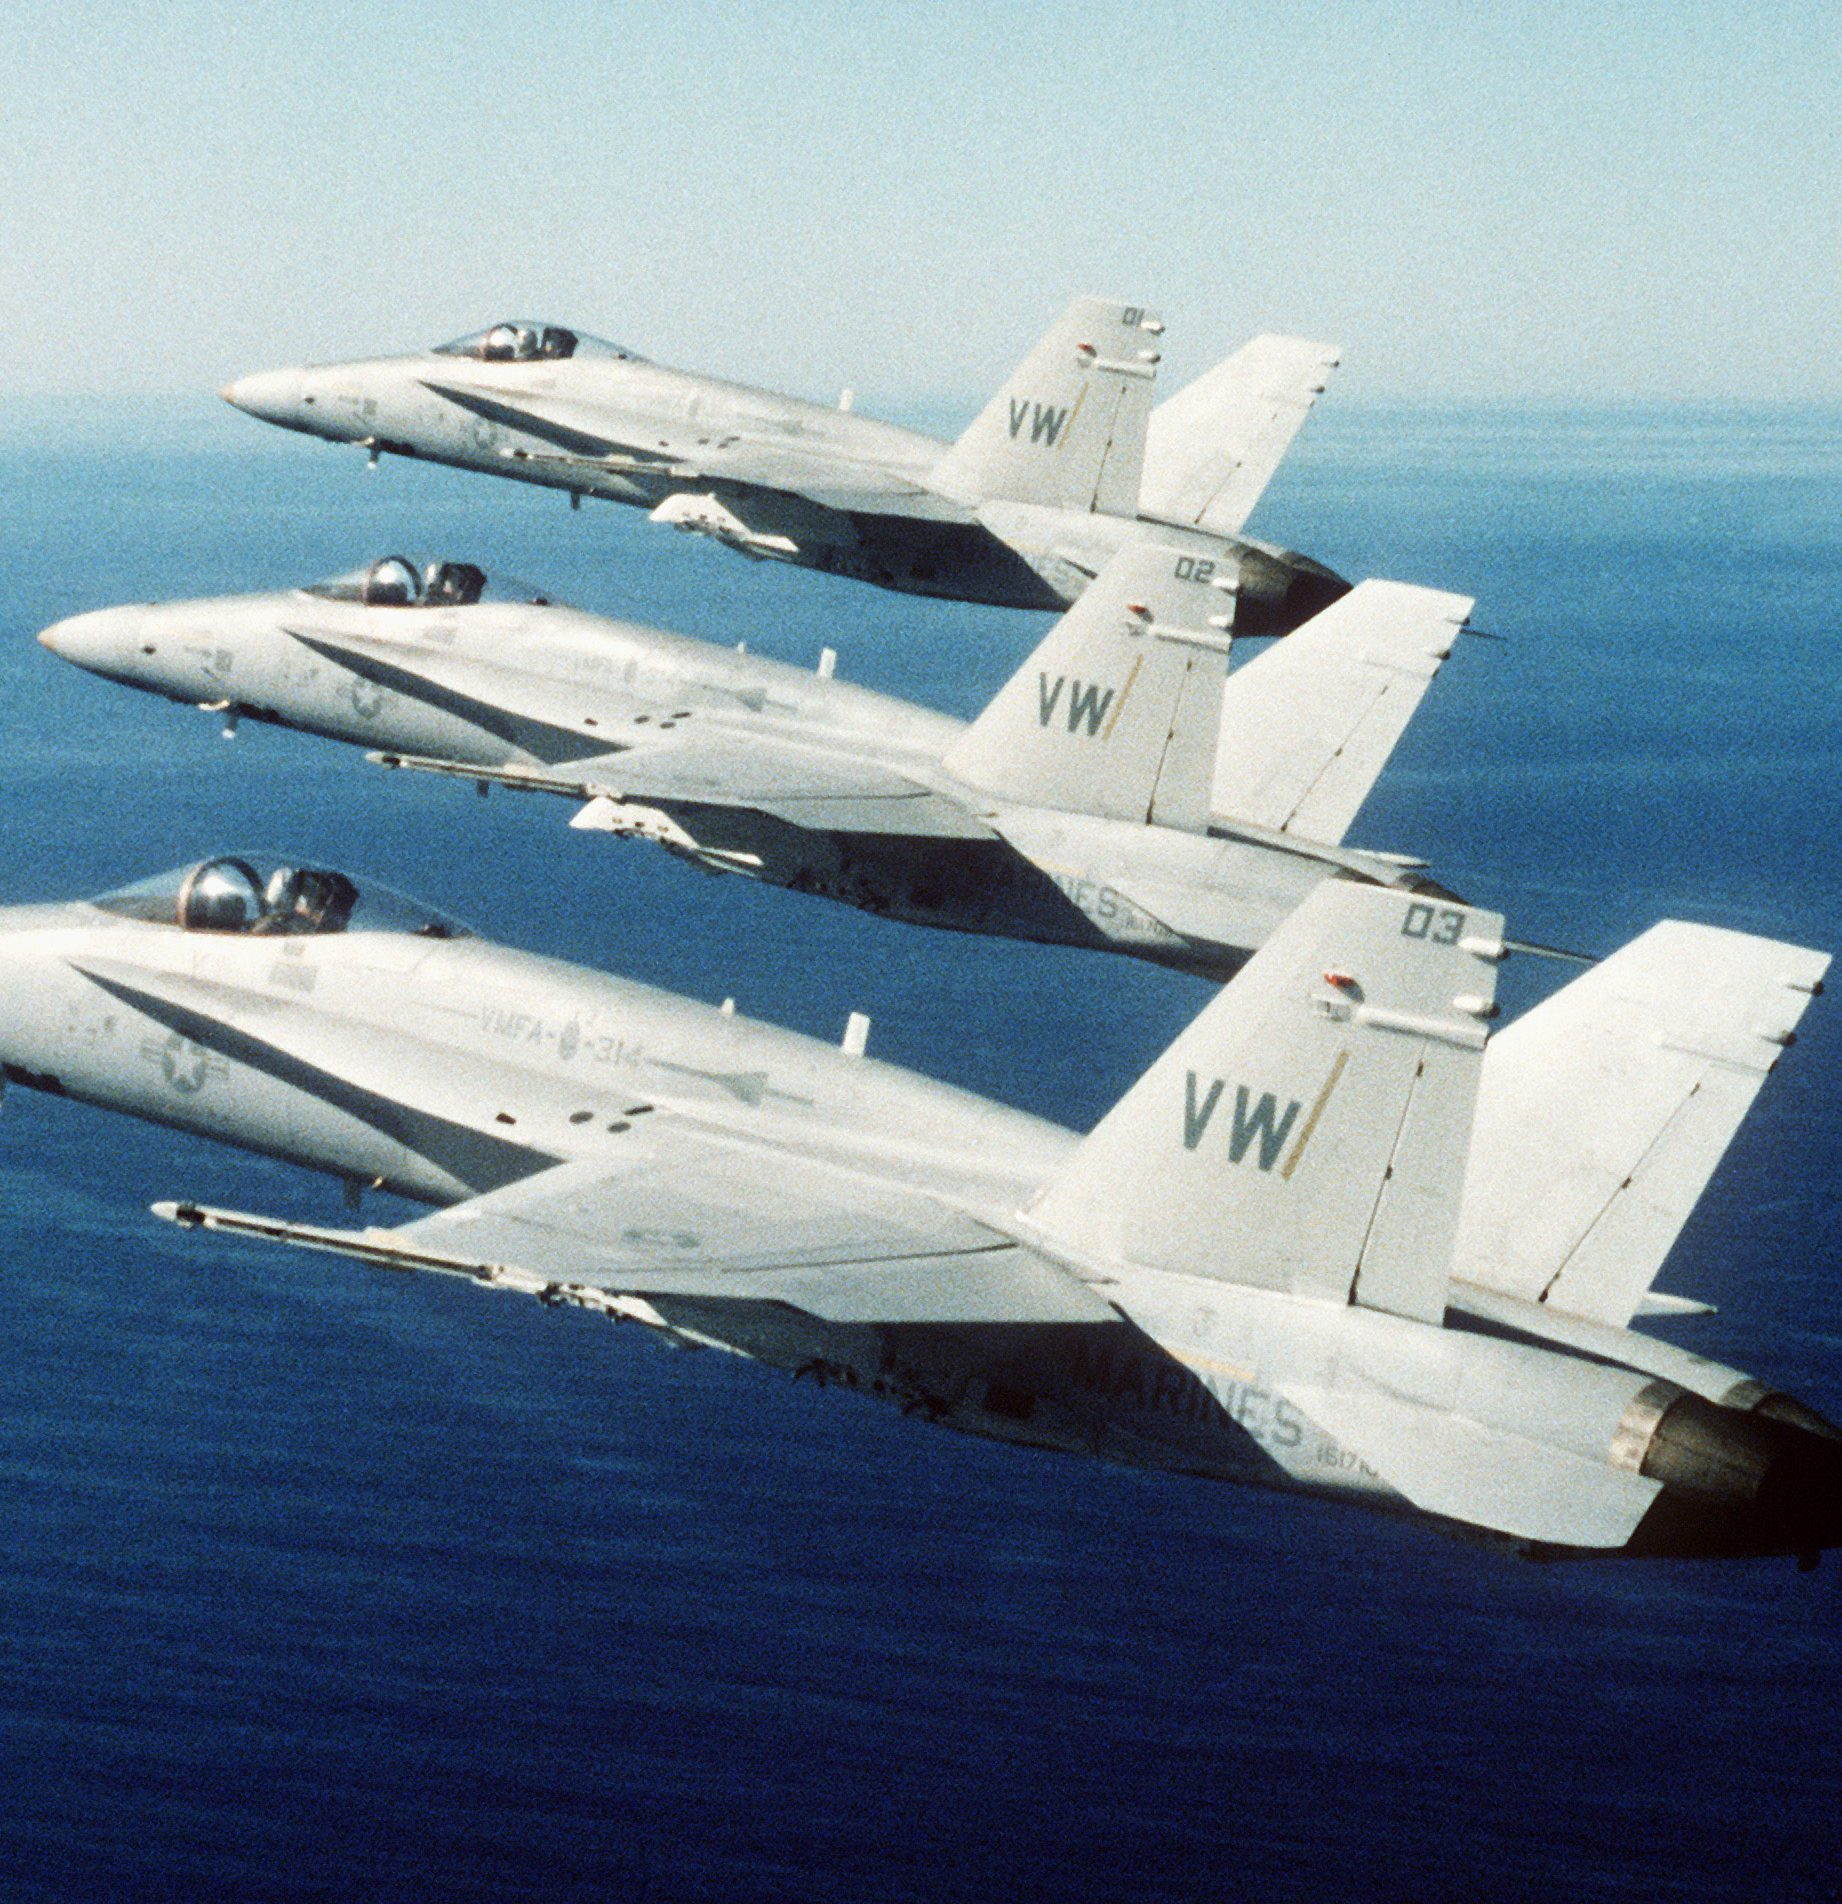 F 18s from VFMA 314 in formation e1582811496917 20 Things You Probably Didn't Know About Independence Day